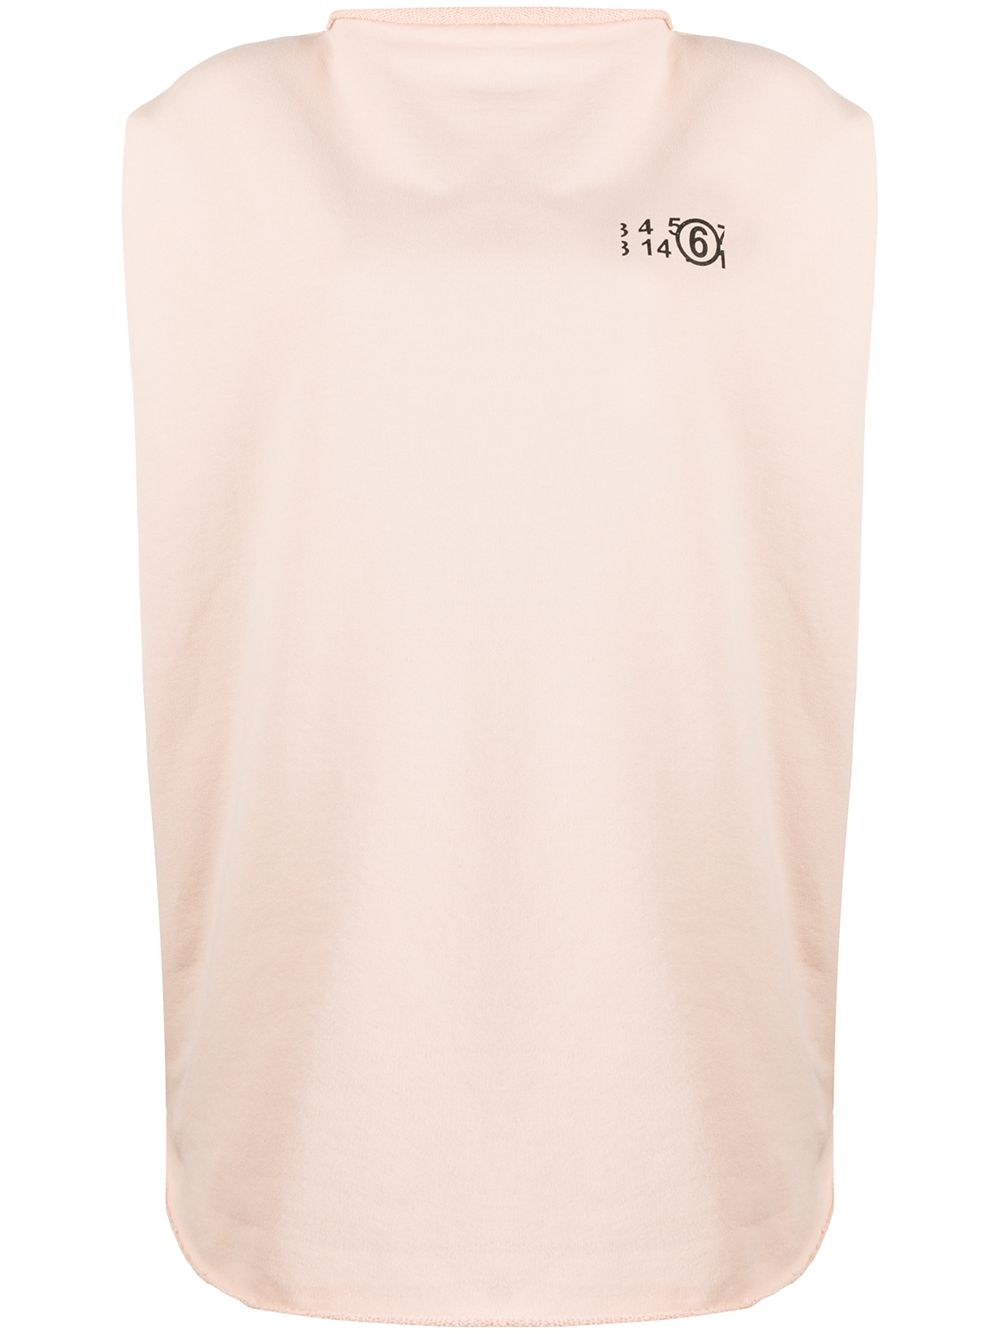 MM6 Maison Margiela number 6 logo cricle print top - Pink von MM6 Maison Margiela